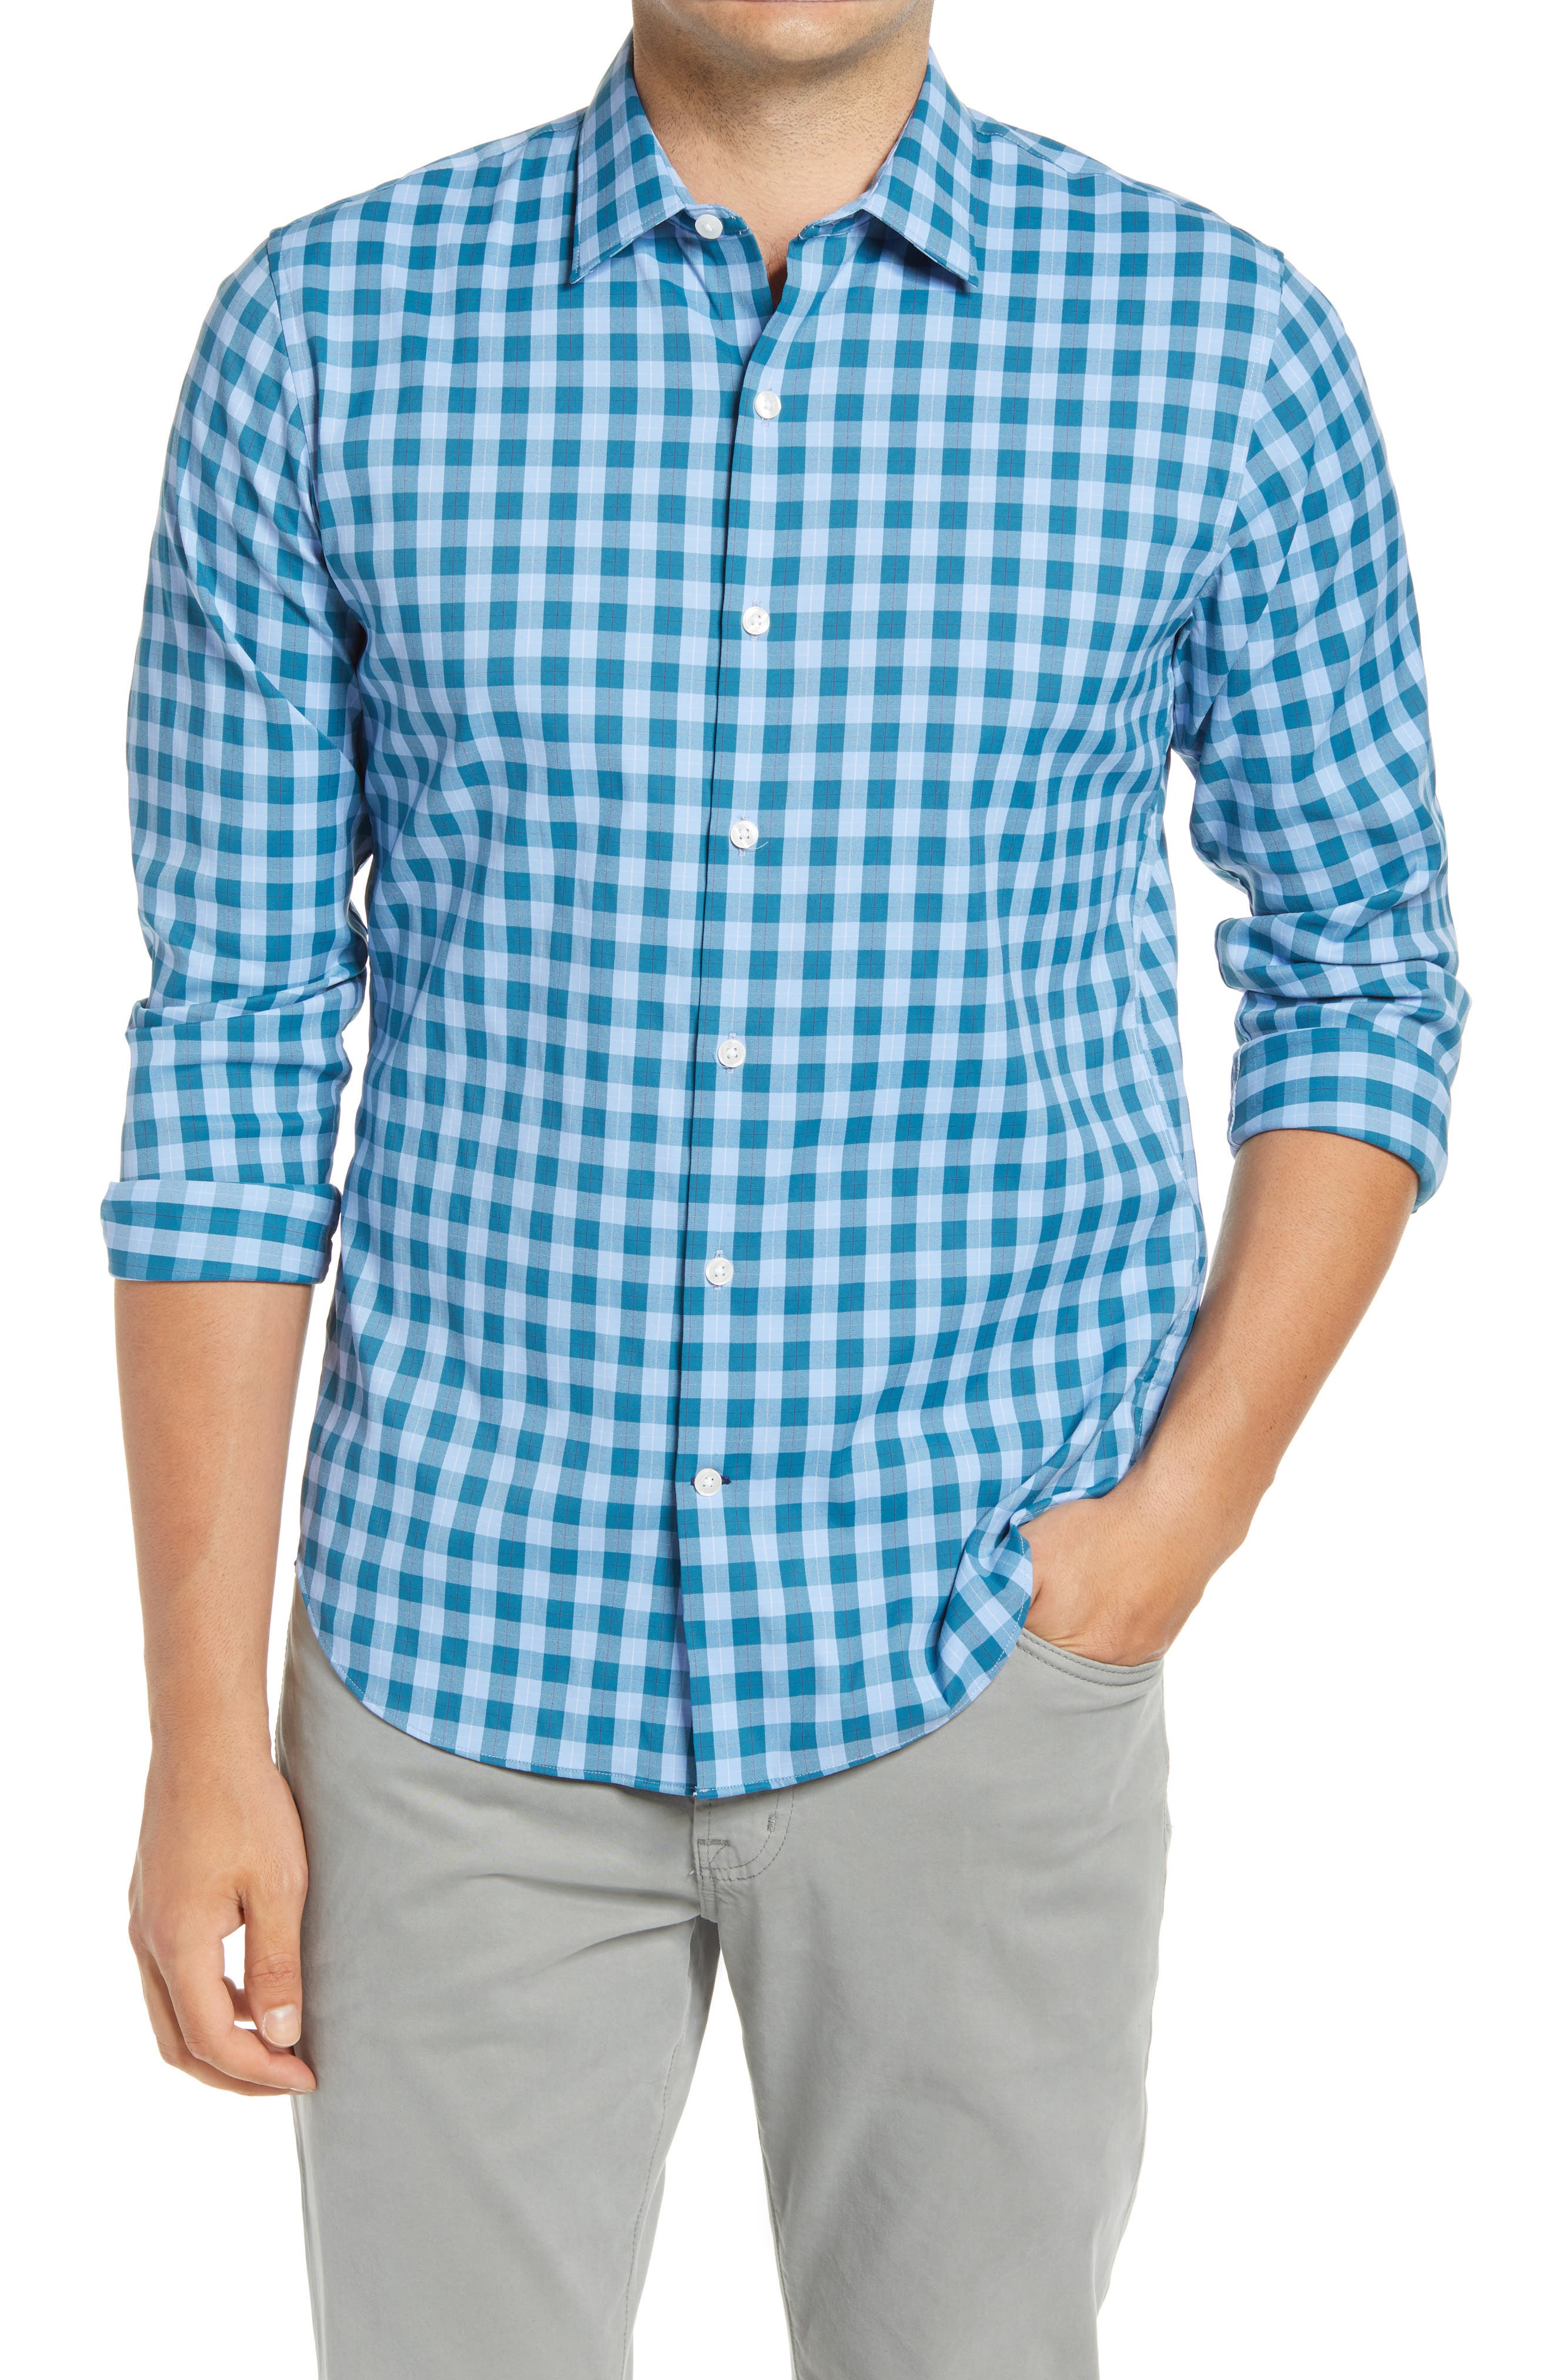 Because you\\\'ve got better things to think about, this sport shirt flexes to your moves, wicks moisture and resists wrinkles to keep you looking sharp all day. Style Name: Bonobos Slim Fit Check Tech Button-Up Shirt. Style Number: 6091973. Available in stores.